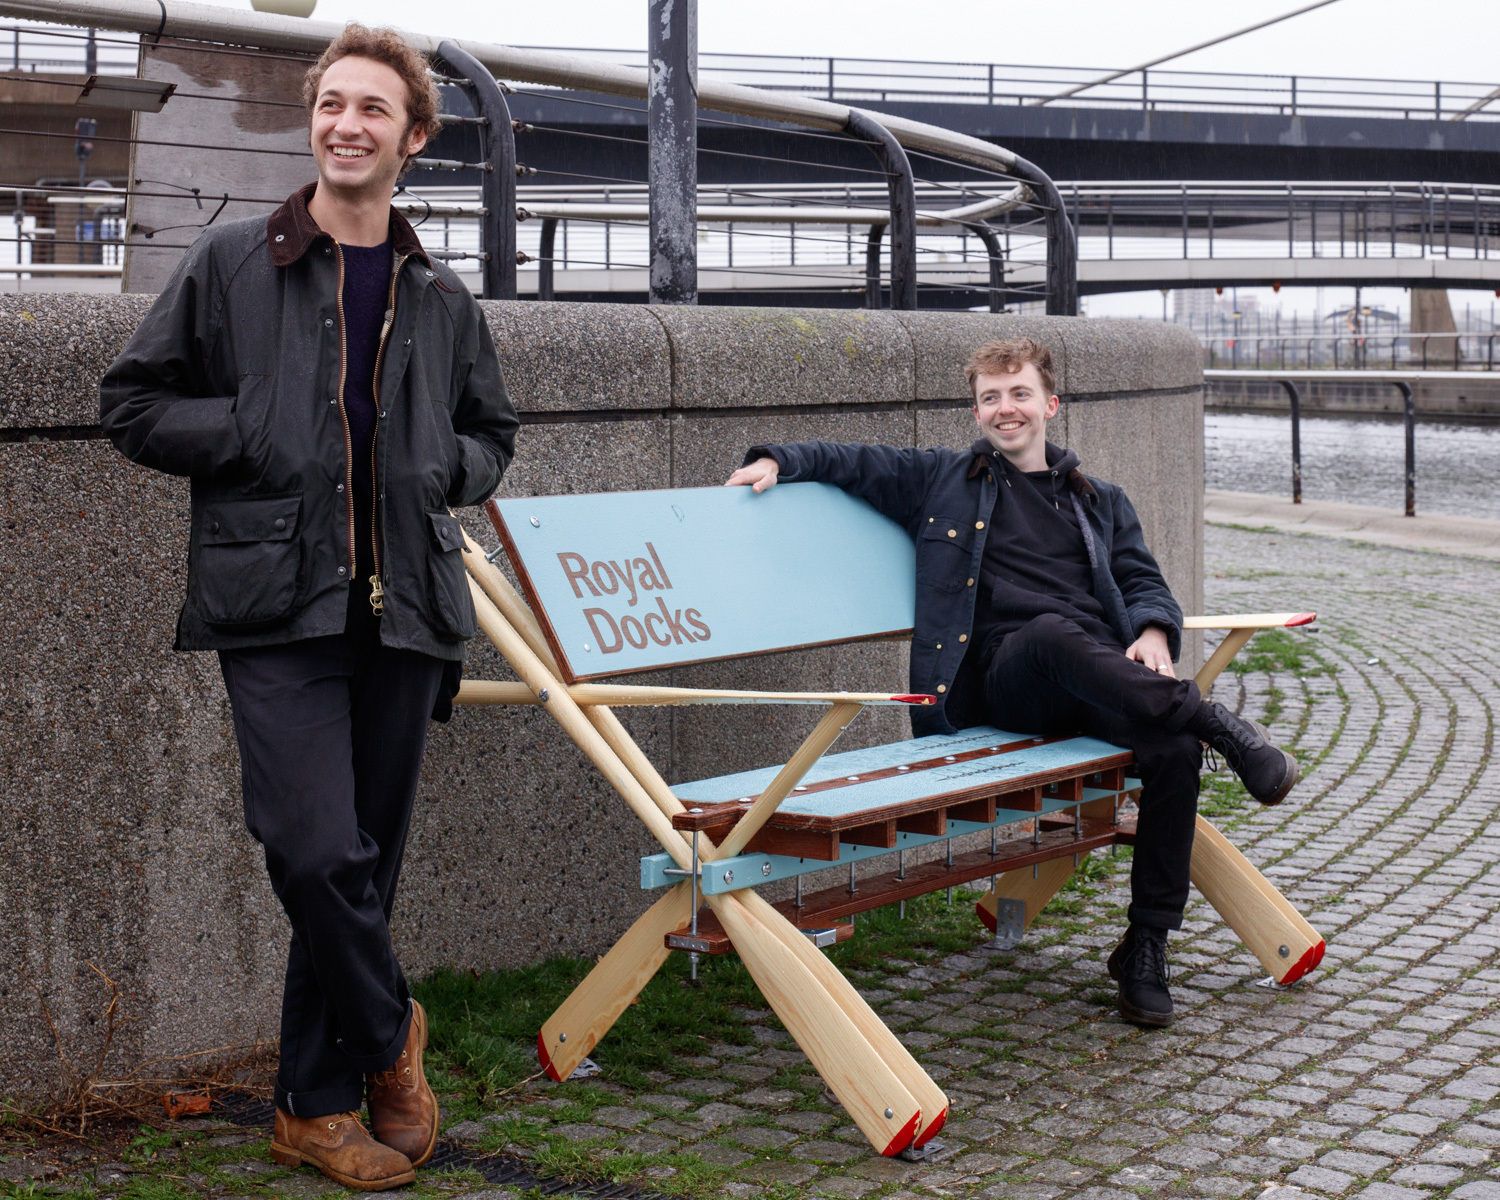 Standing by a bench at the Royal Docks